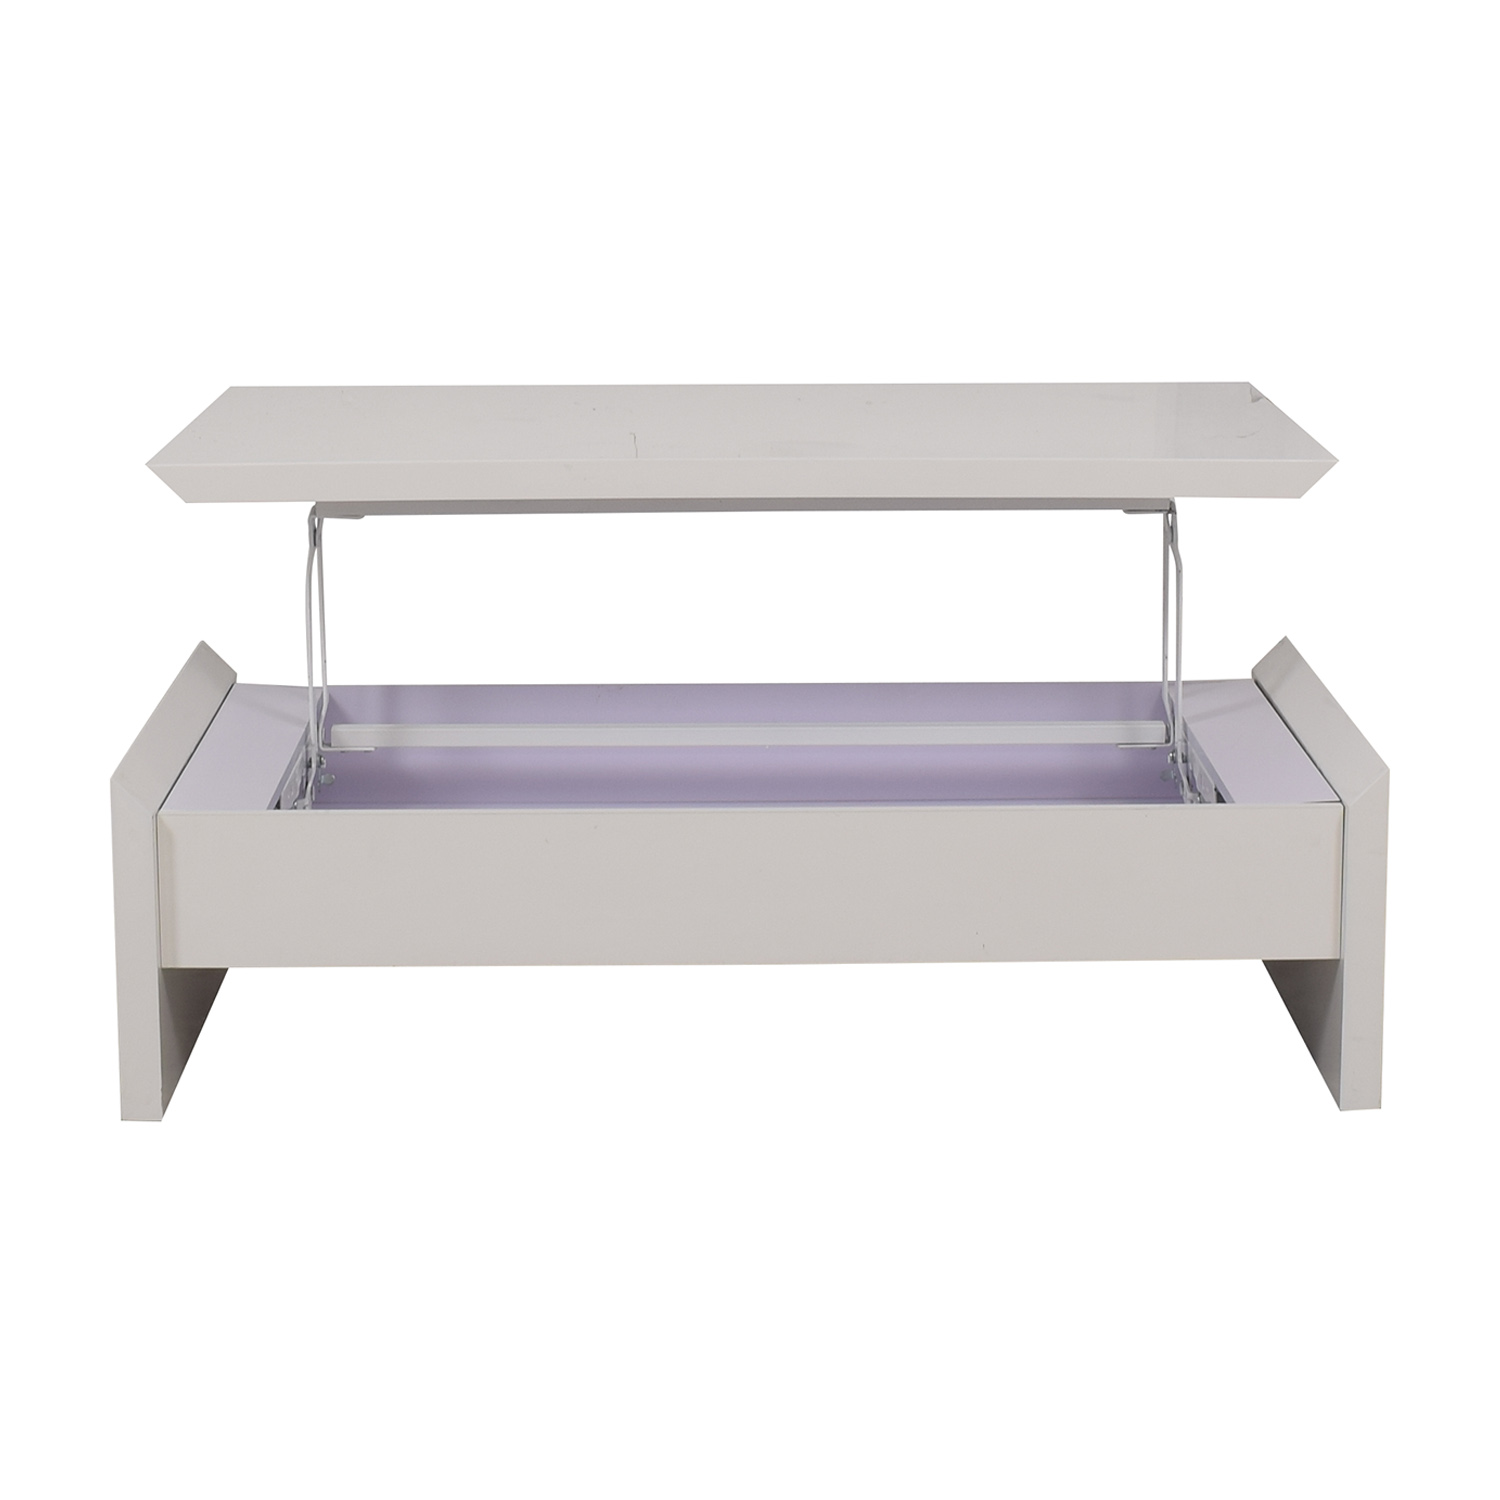 Safavieh Safavieh White Coffee Table with Lift Top Storage for sale